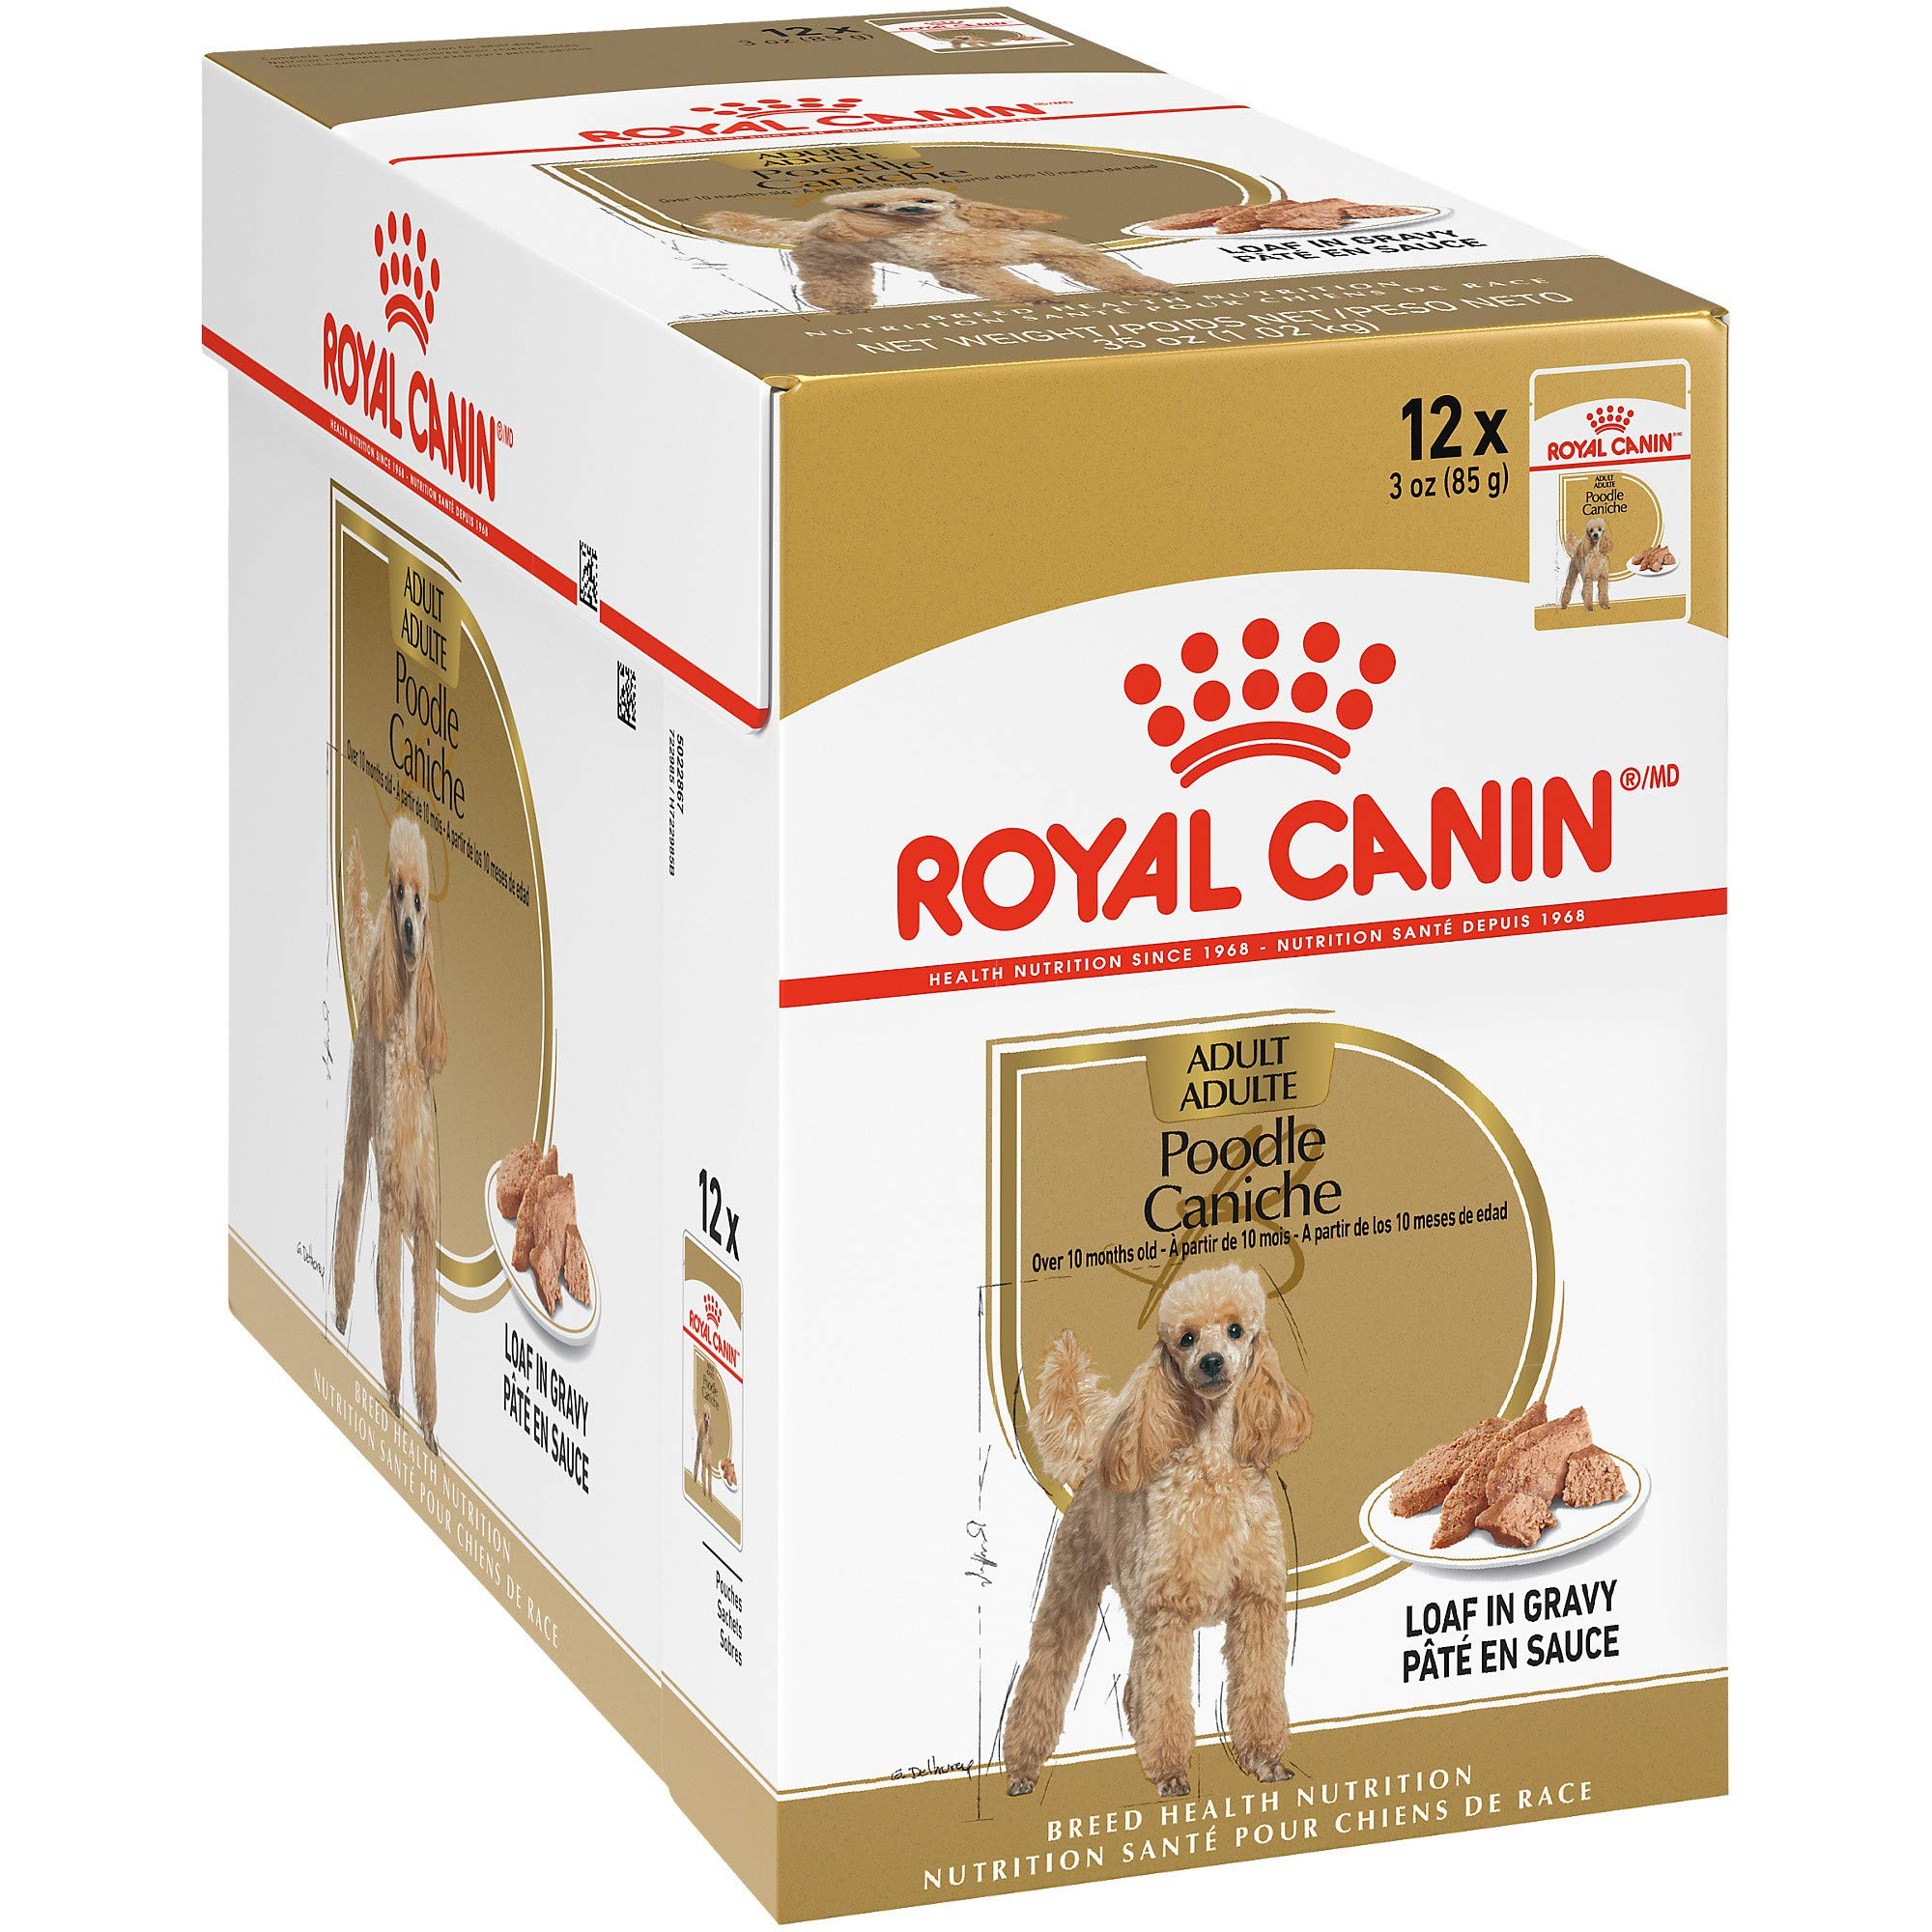 Royal Canin Breed Health Nutrition Poodle Loaf in Gravy Pouch Dog Food, 3 oz Pouch (Pack of 12) by Royal Canin